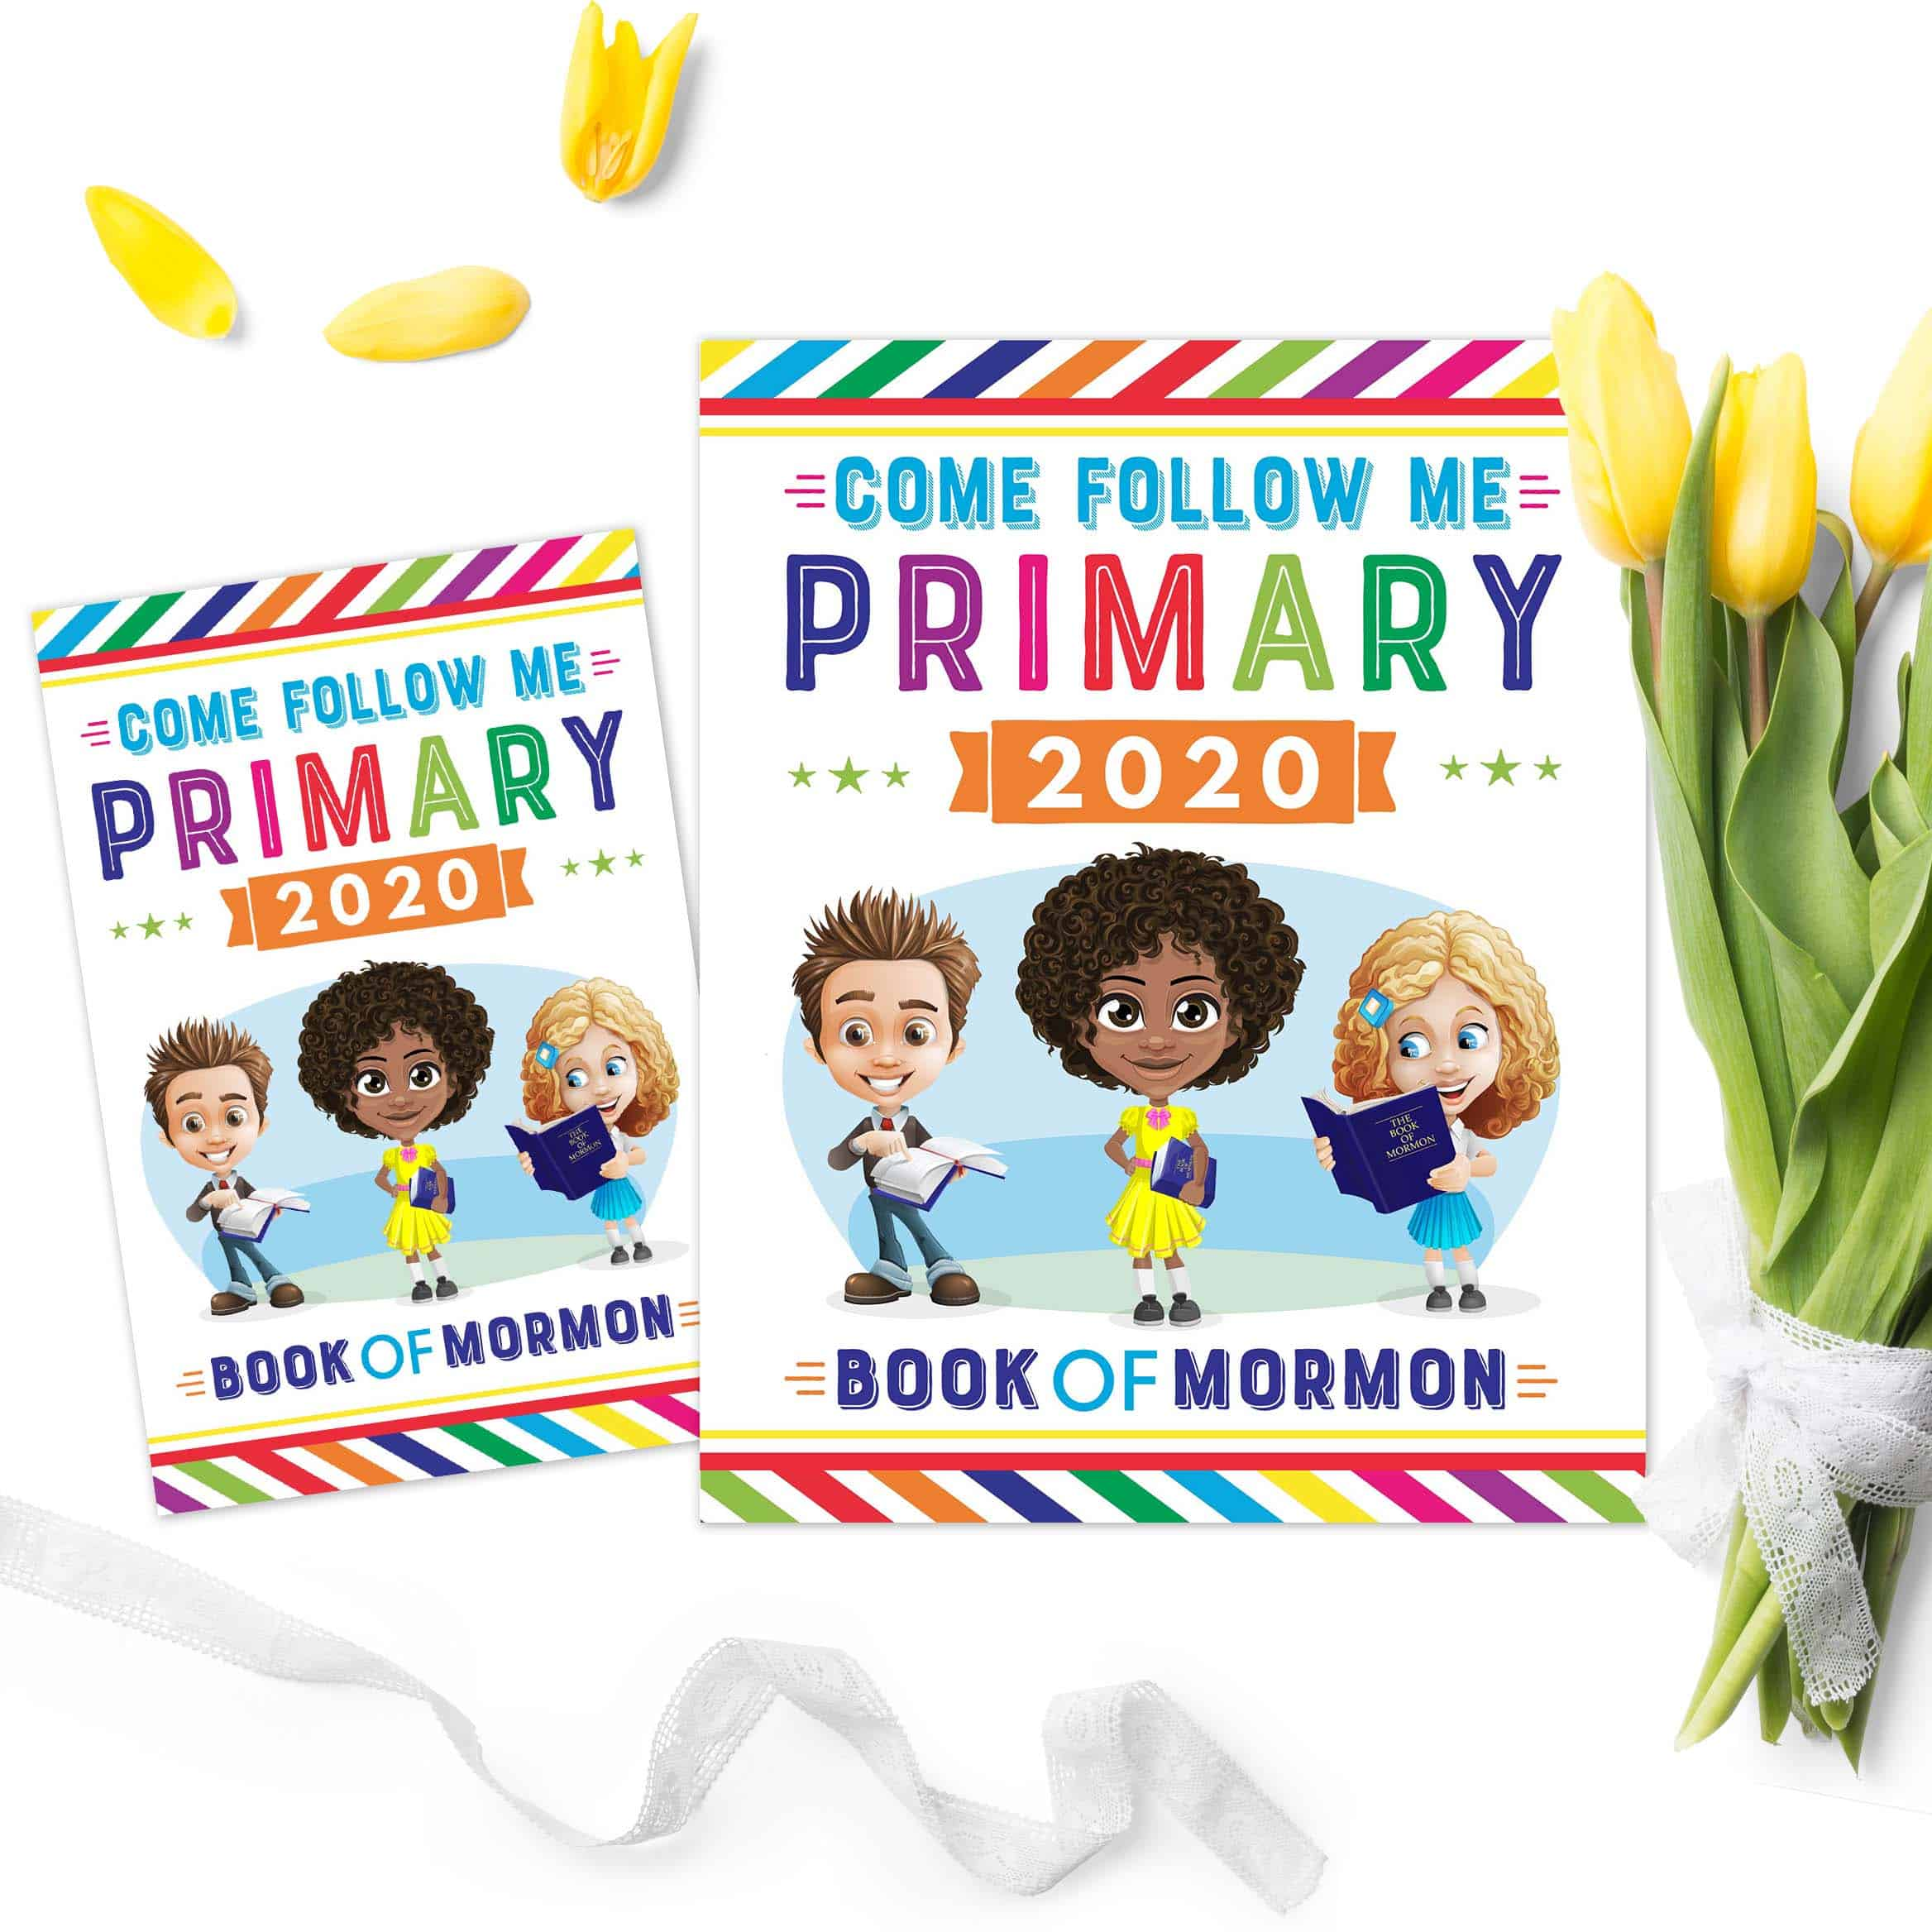 Free Primary 2020 Printables for Come Follow Me.